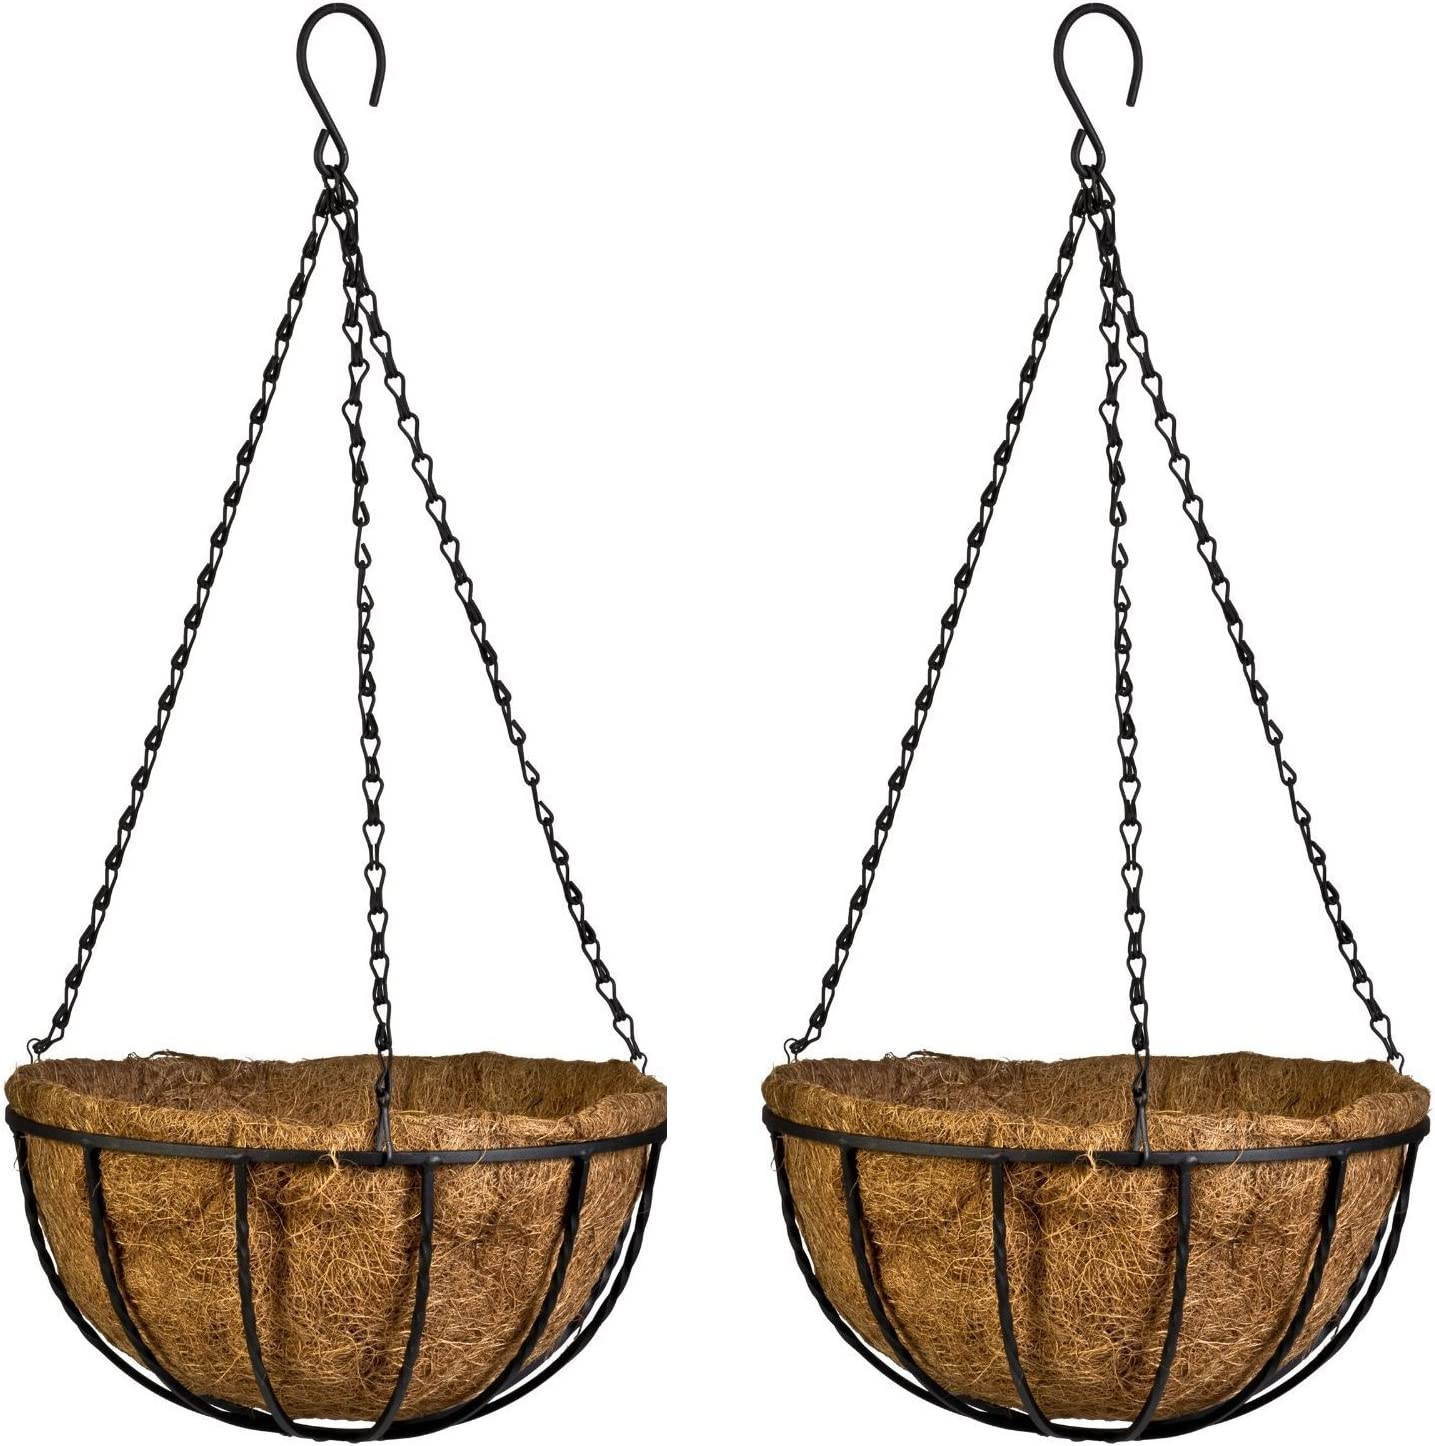 Kingbuy Hanging Basket Planter Metal with Coconut Coir Liner Wire Plant Holder with Outdoor Decorations for Porch Pots Hanger Home Garden Decoration Indoor Outdoor Watering Hanging Baskets 8inch 2PCS